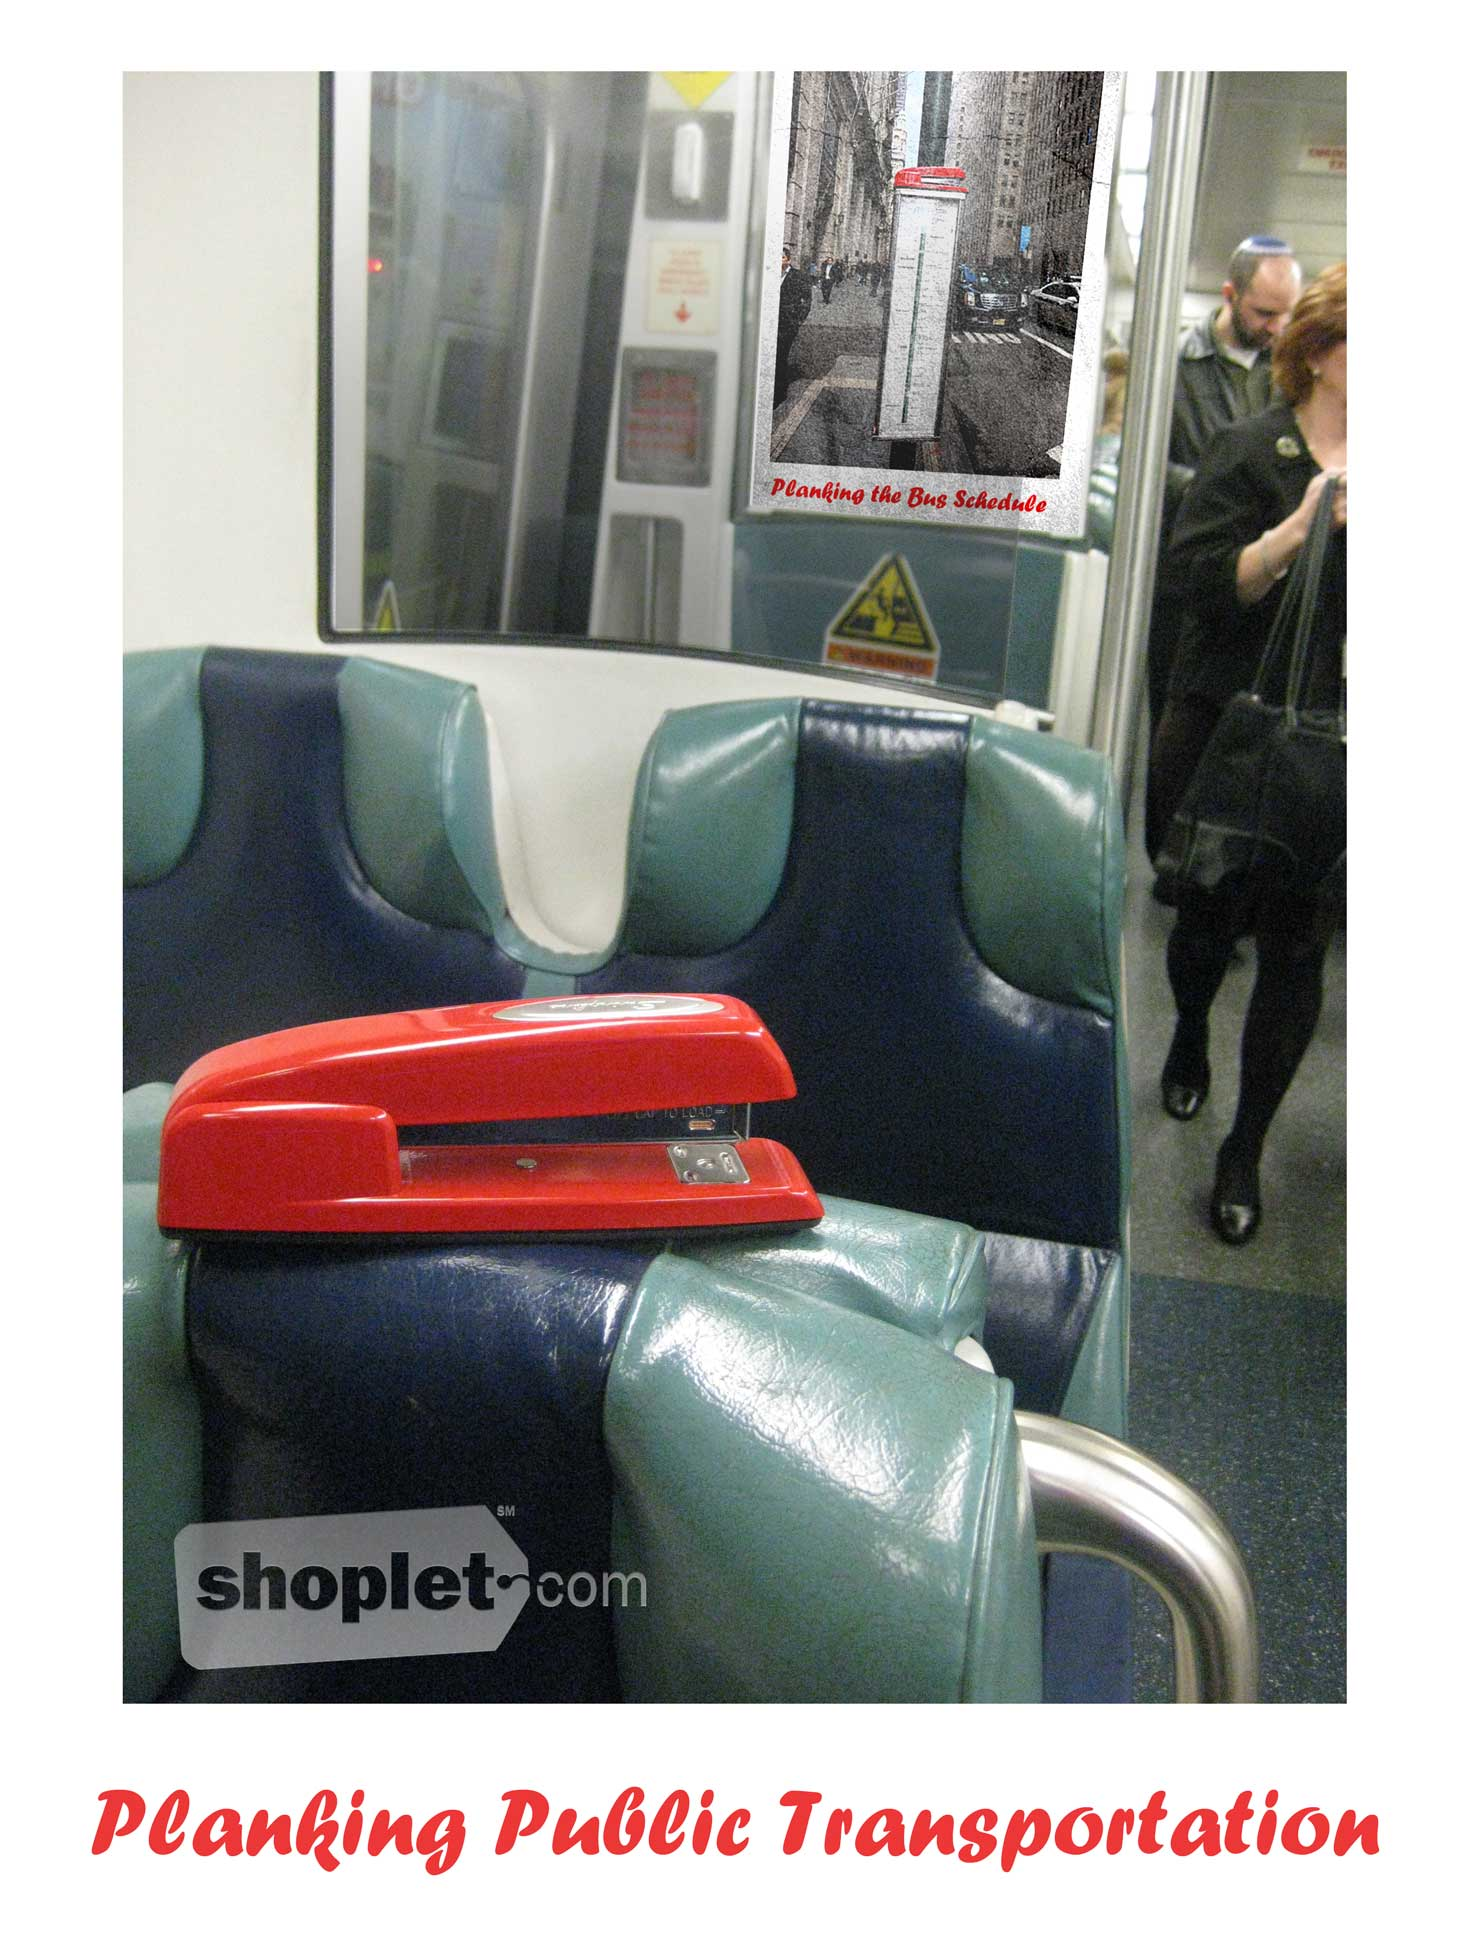 Shoplet Planking Stapler Train Shoplet Planking Stapler Planks on the Train